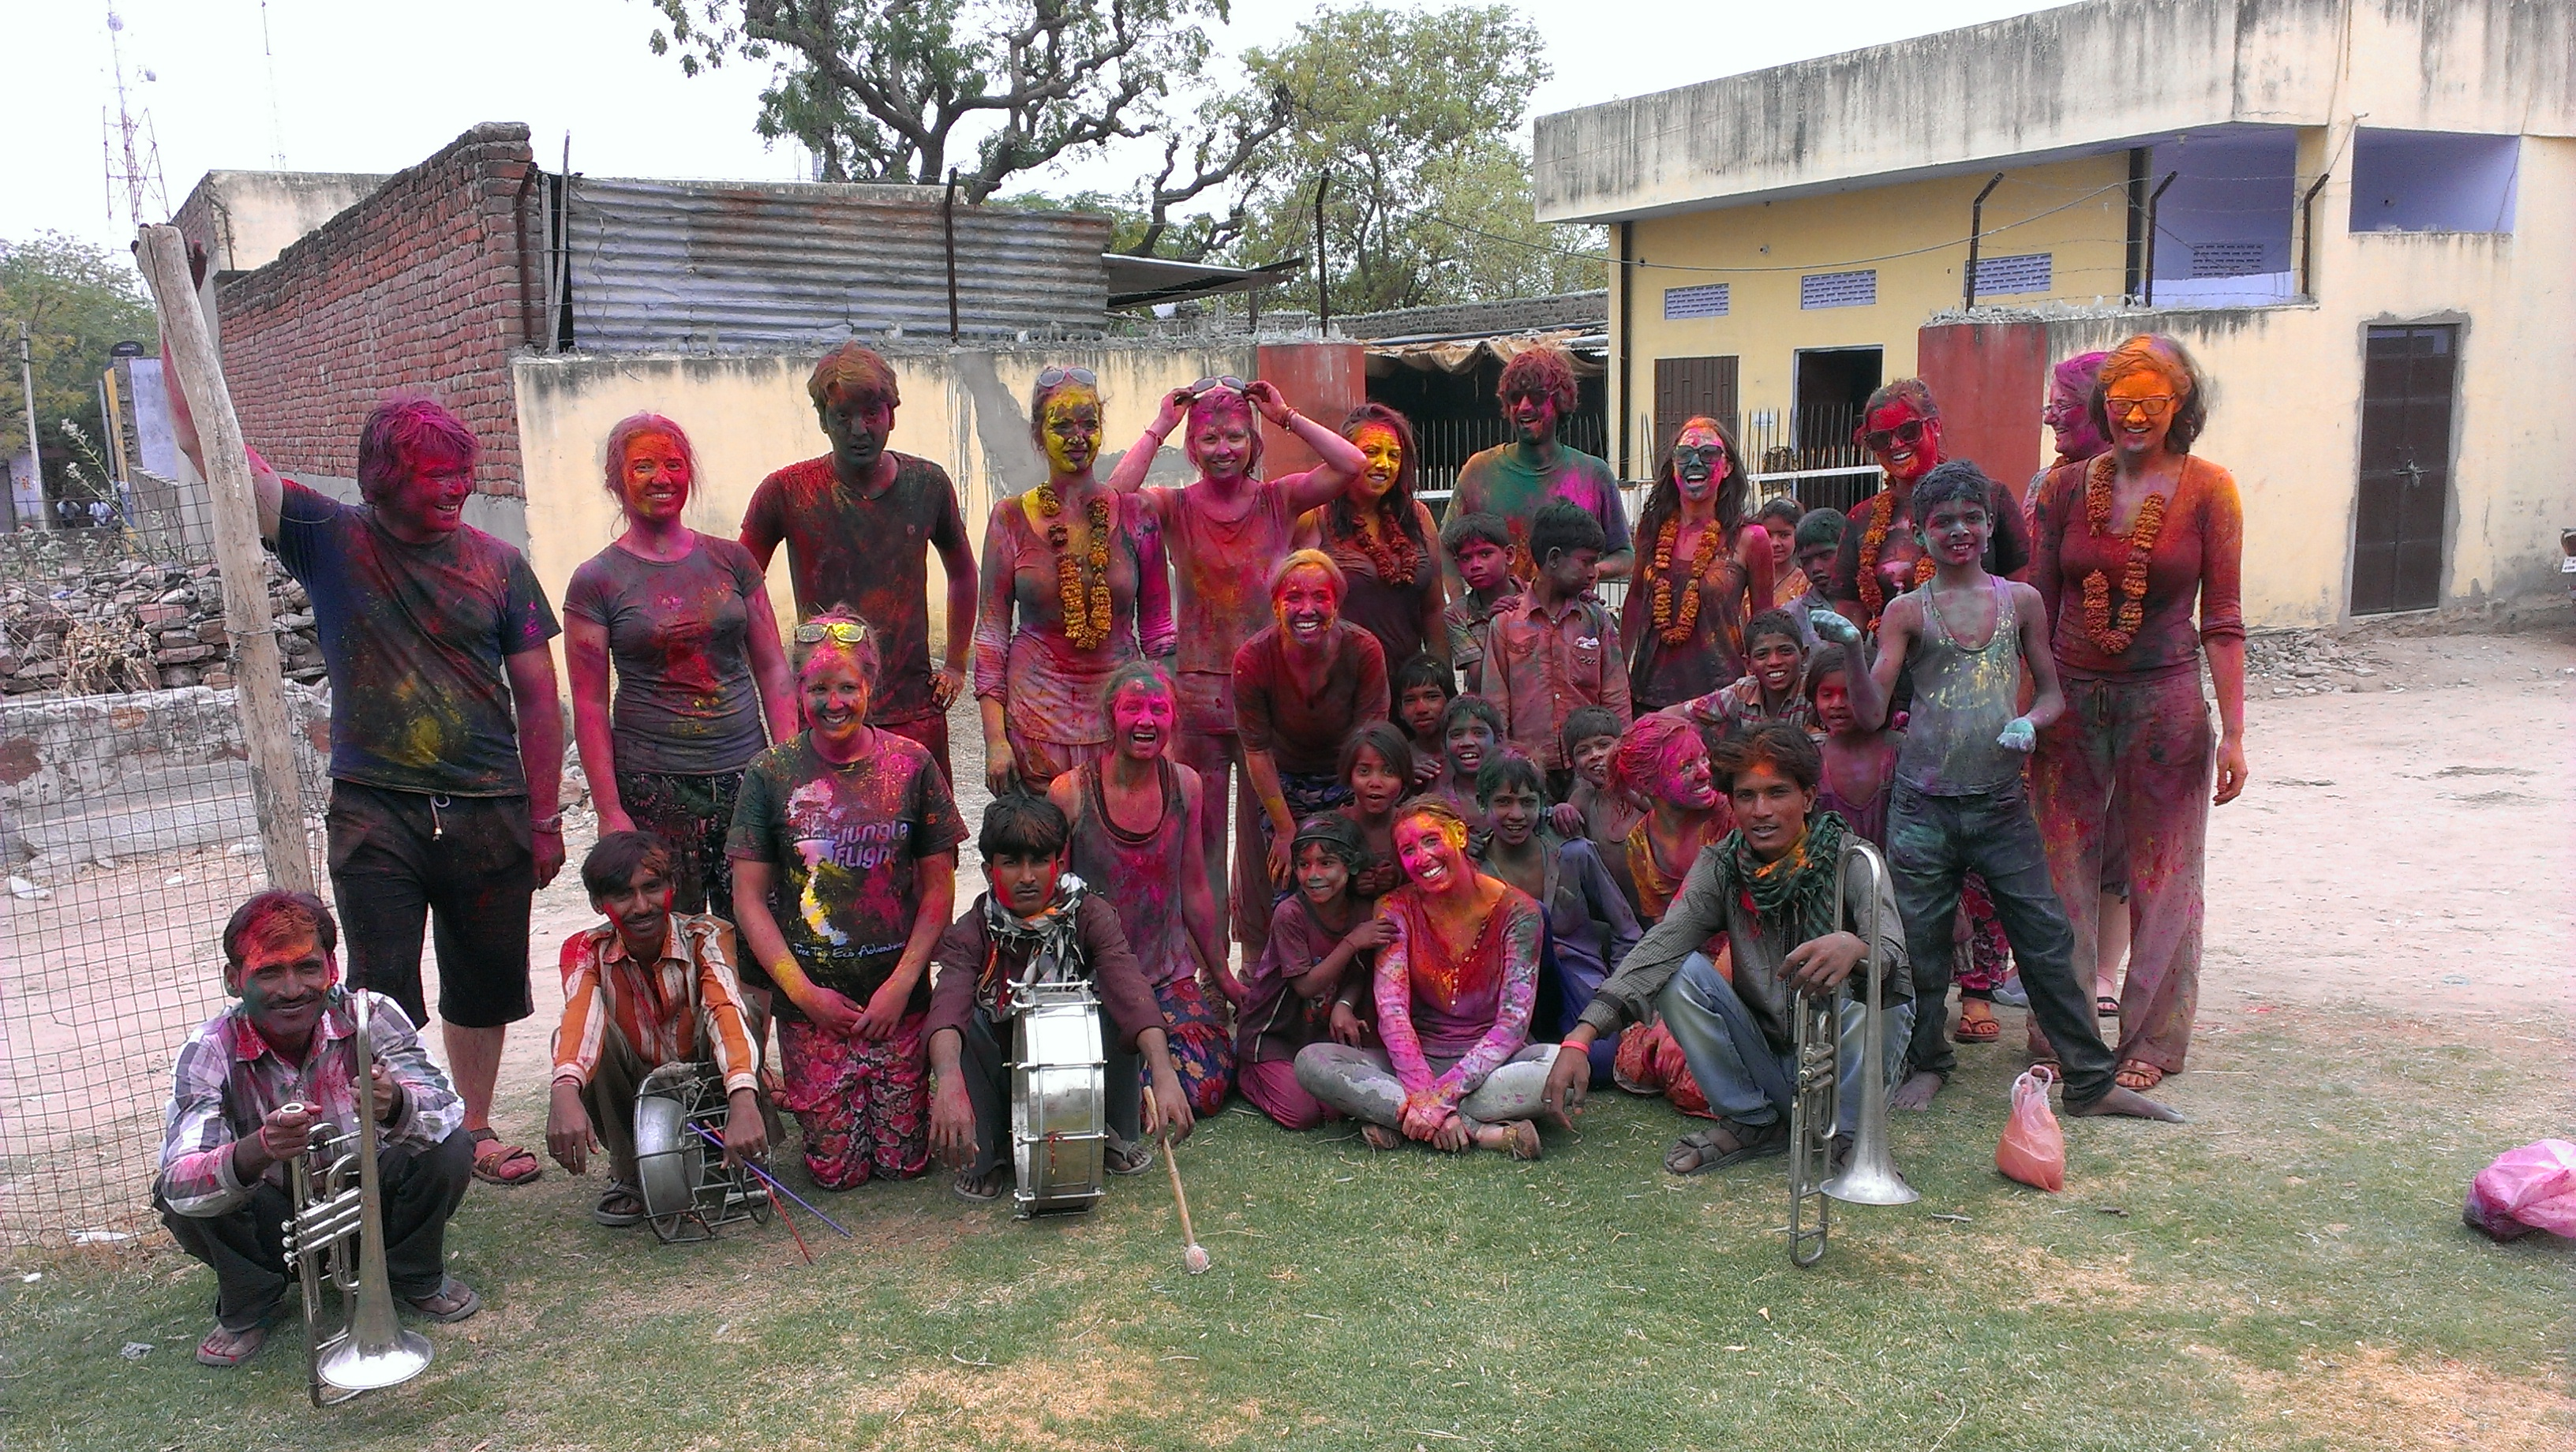 5 Reasons Why You Should / Shouldn't Include The Indian Holi Festivities In Your Bucket List